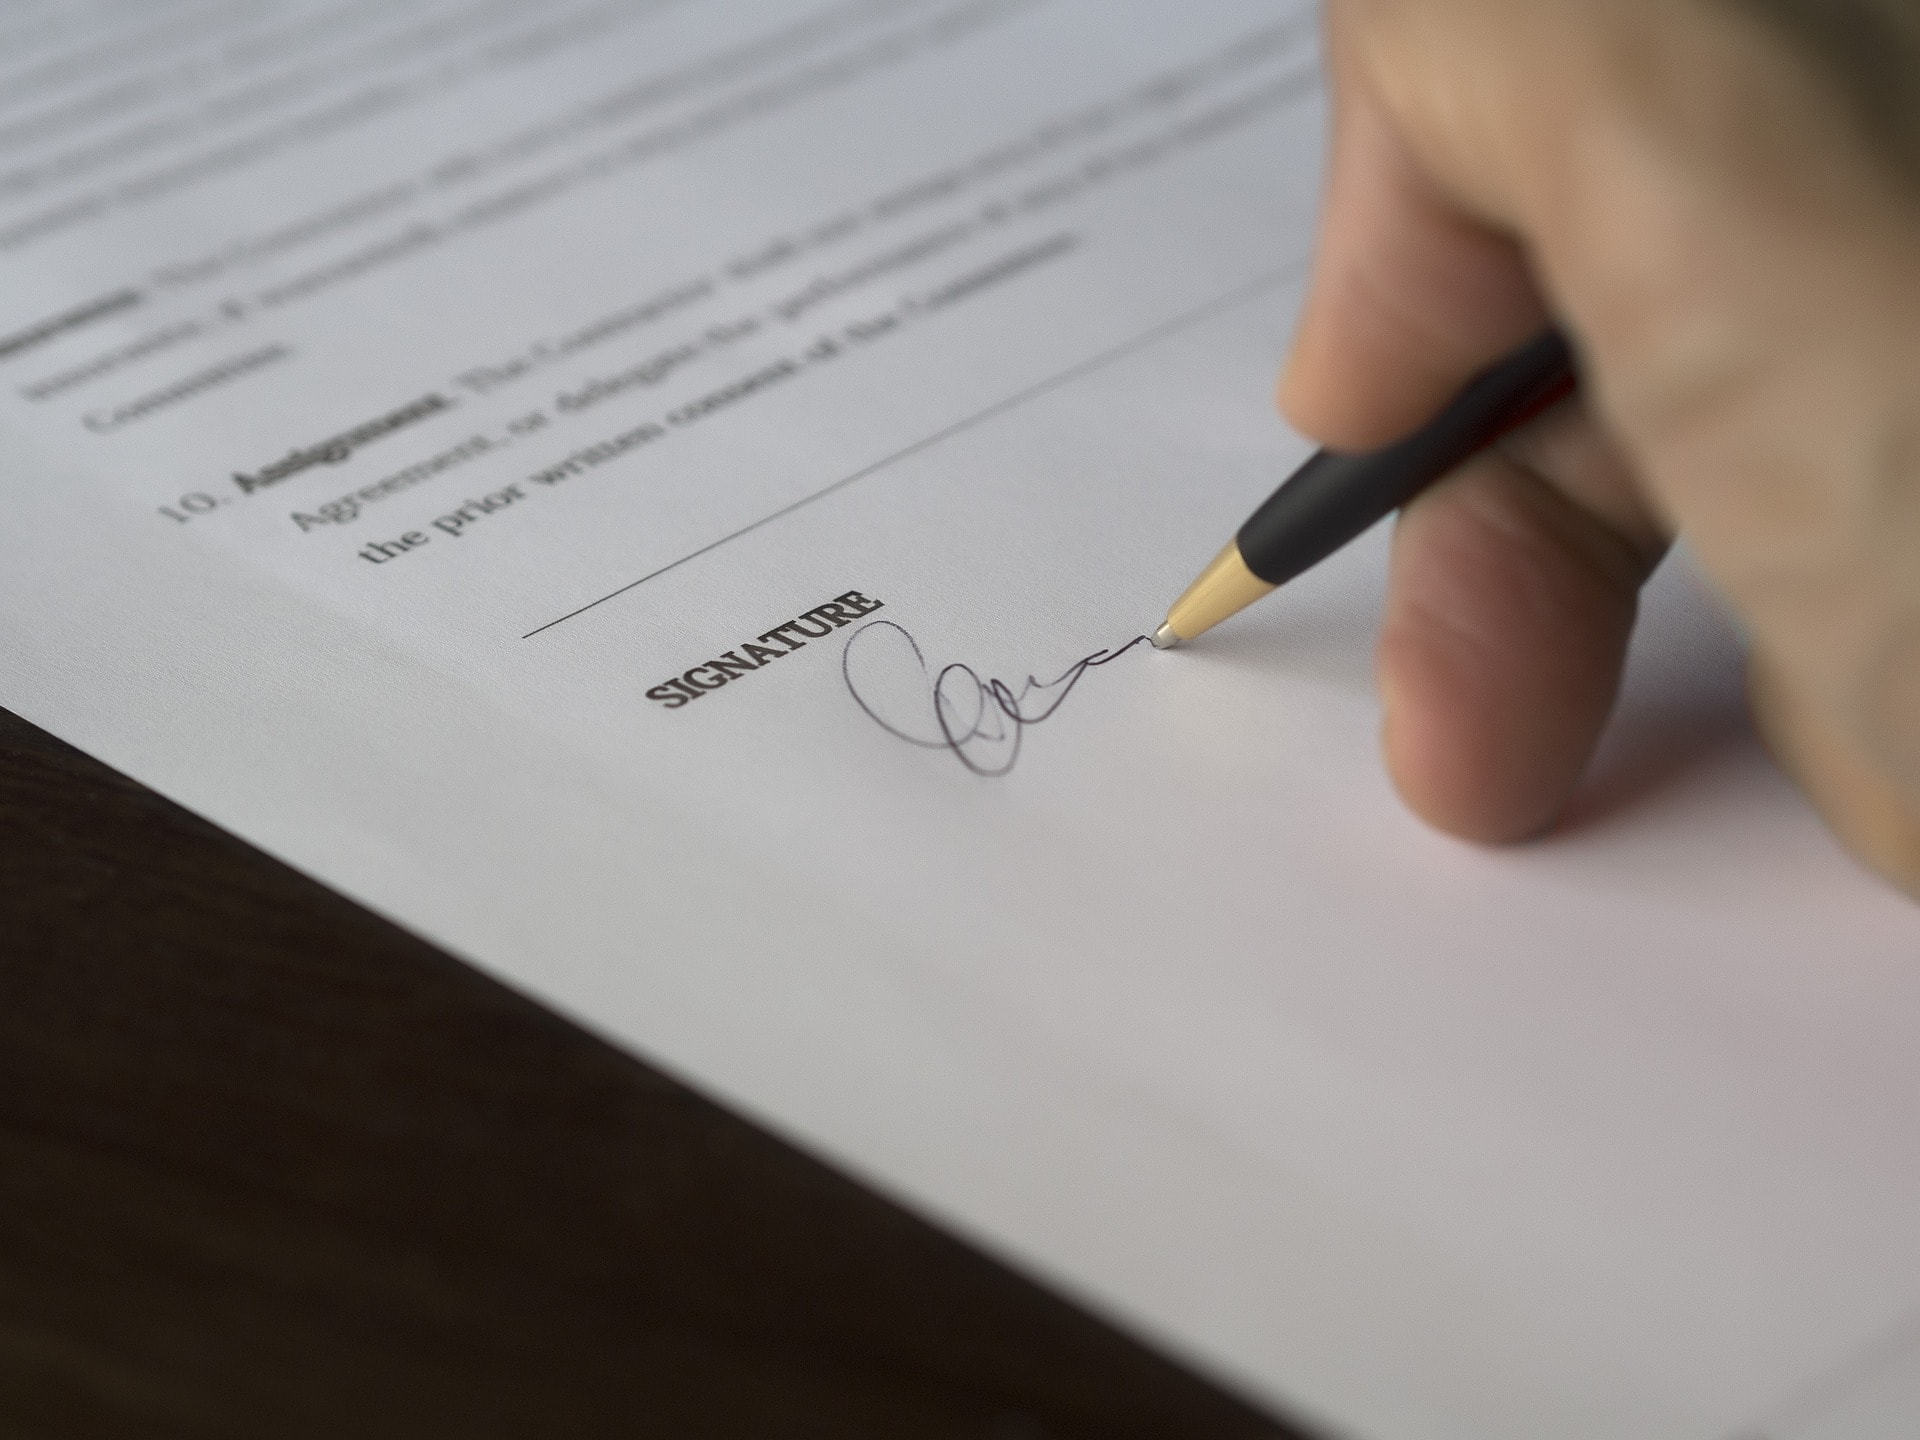 What To Do When a Family Member Contests a Will